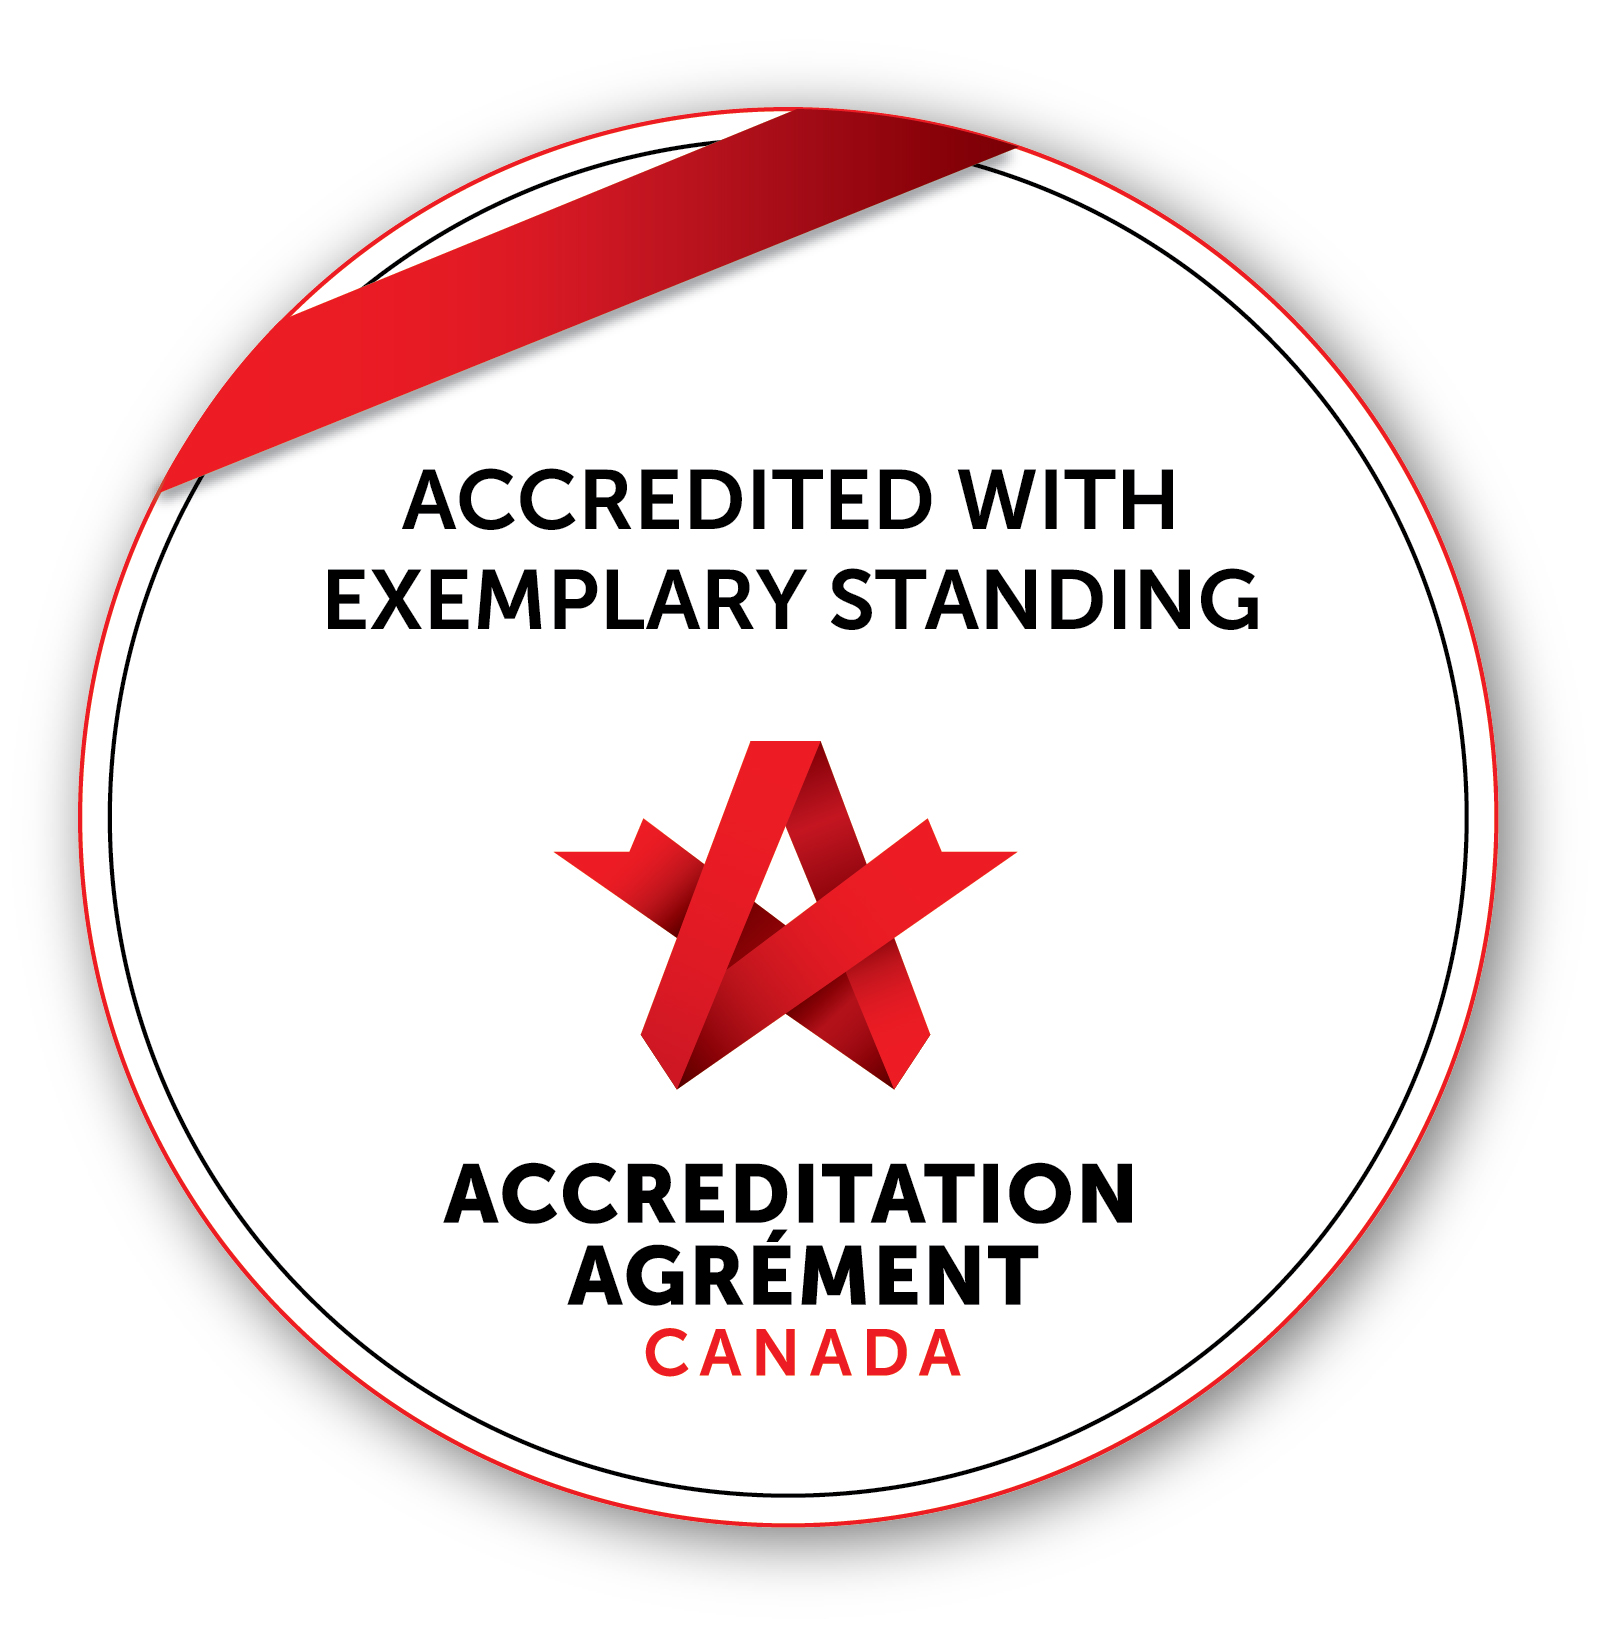 Accreditation with Exemplary Standing - Accreditation Canada